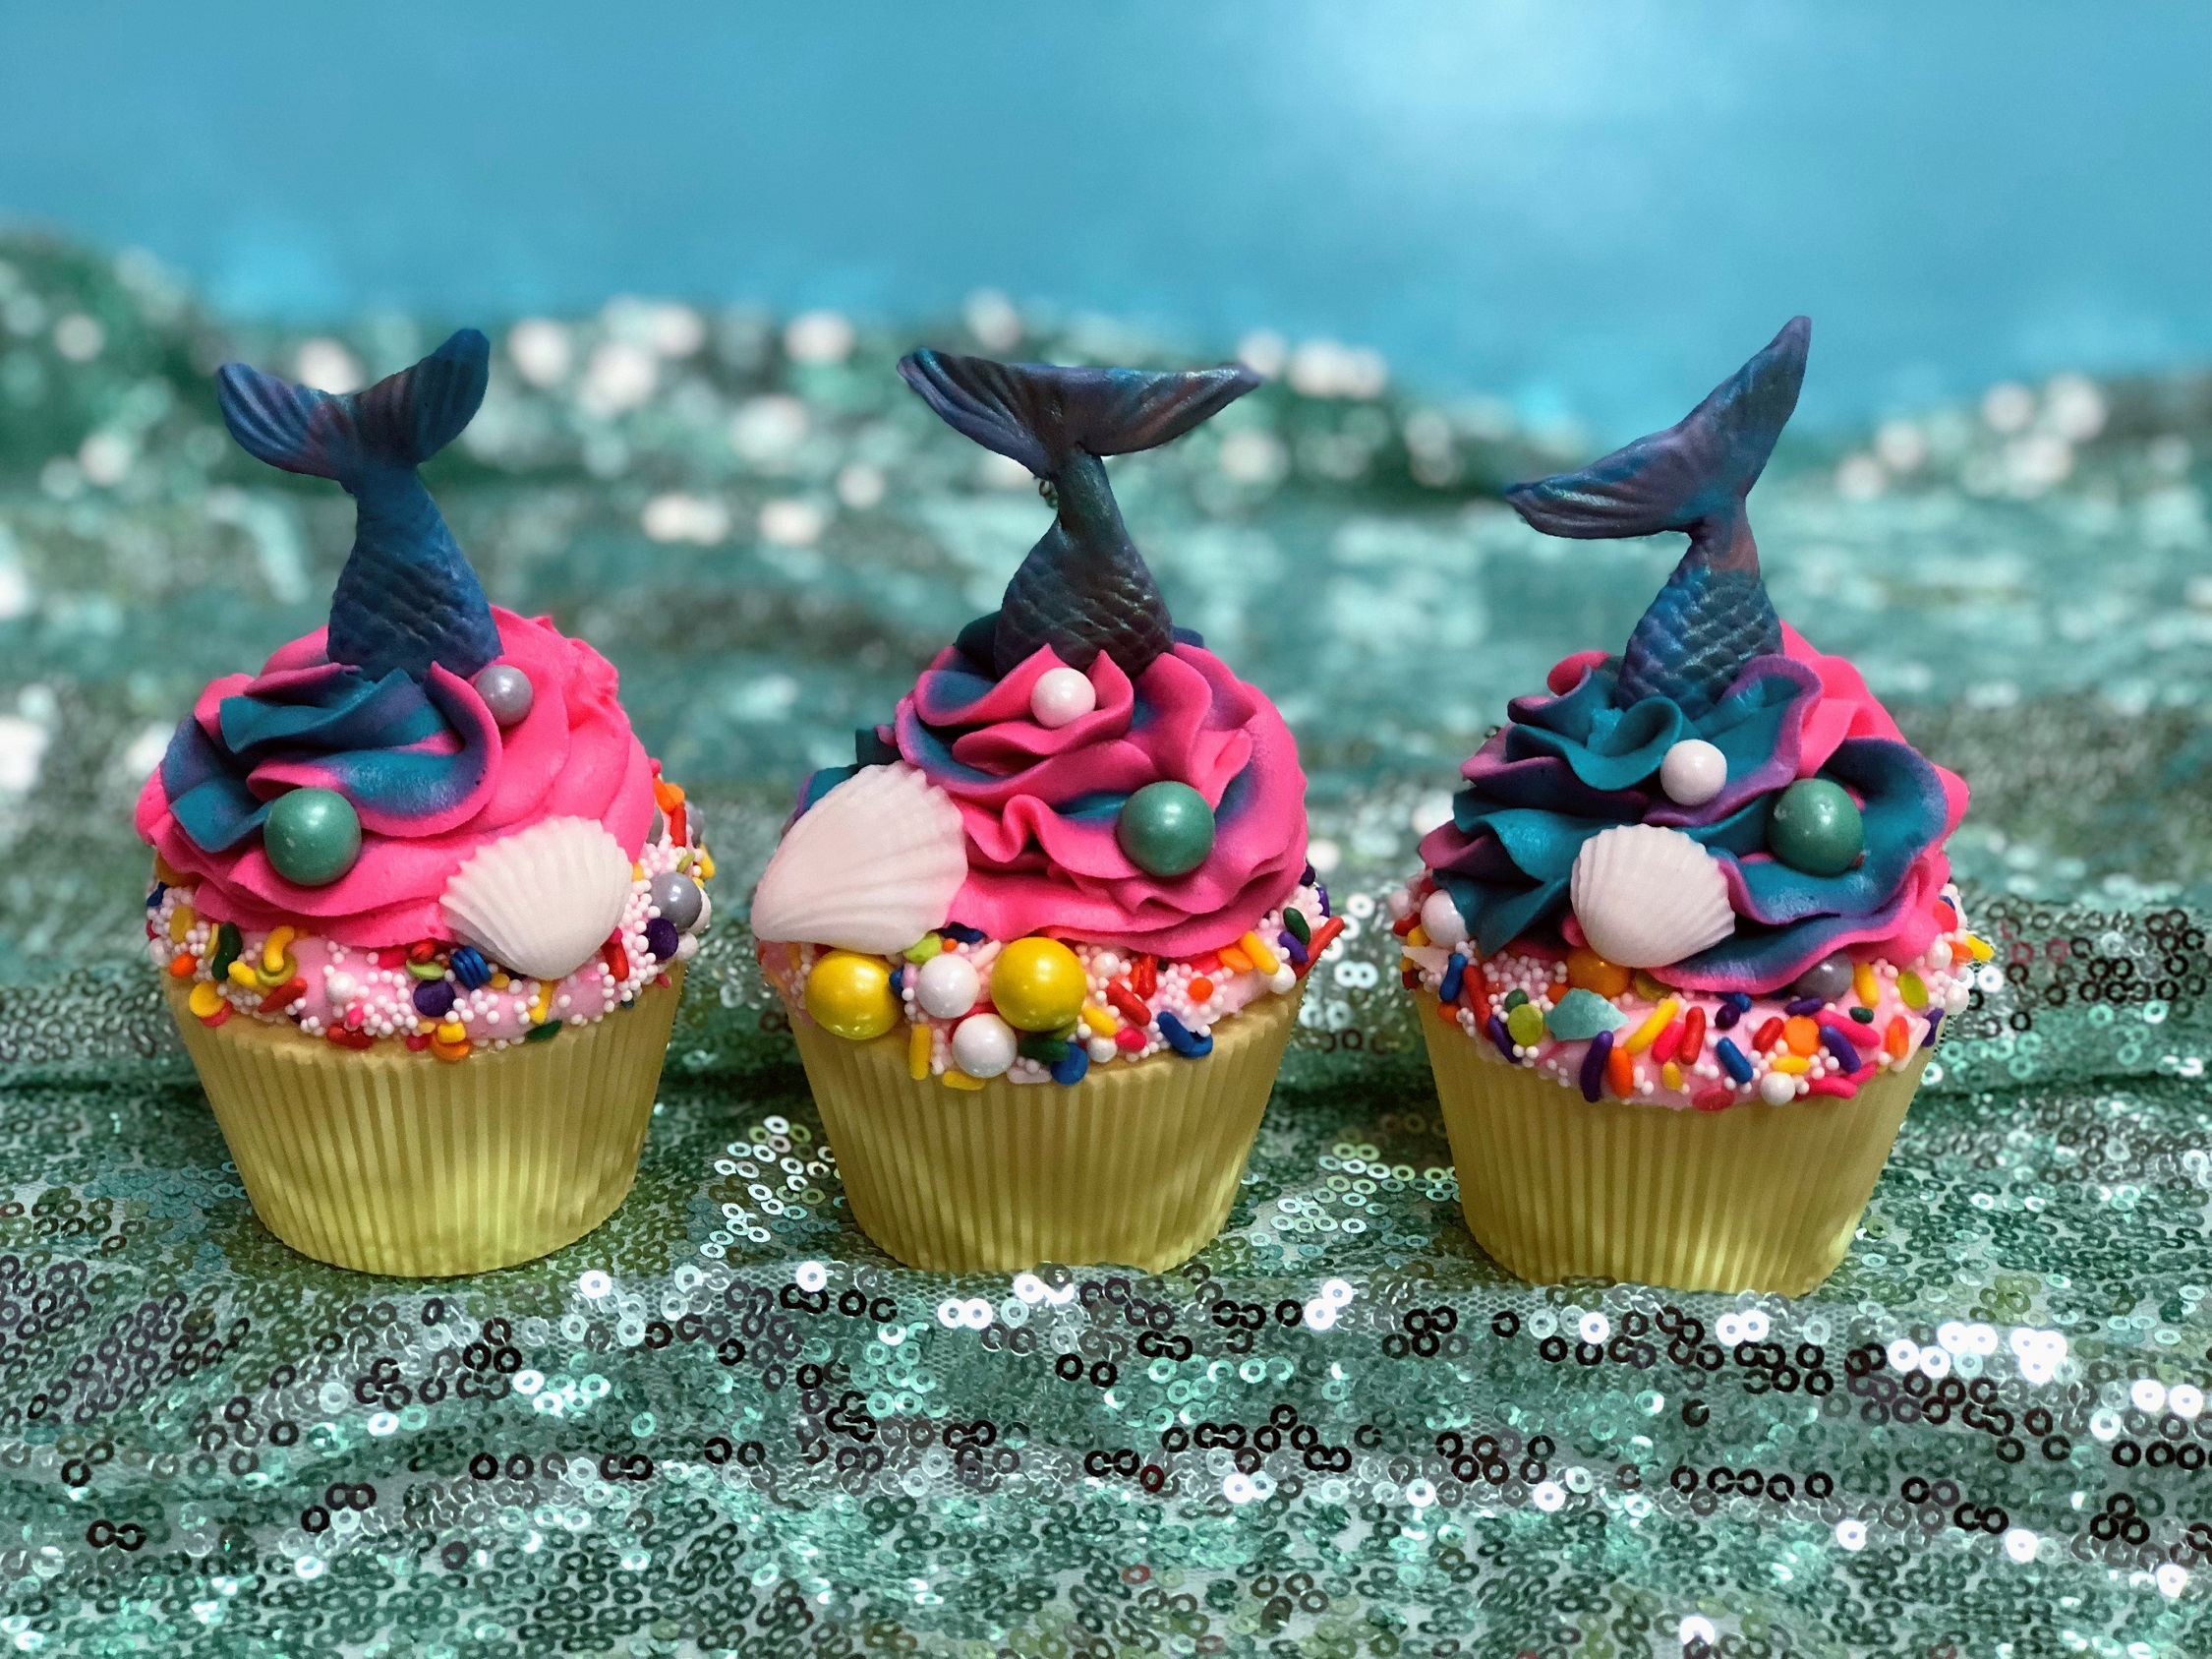 Corks & Confections: Mermaid Cupcakes